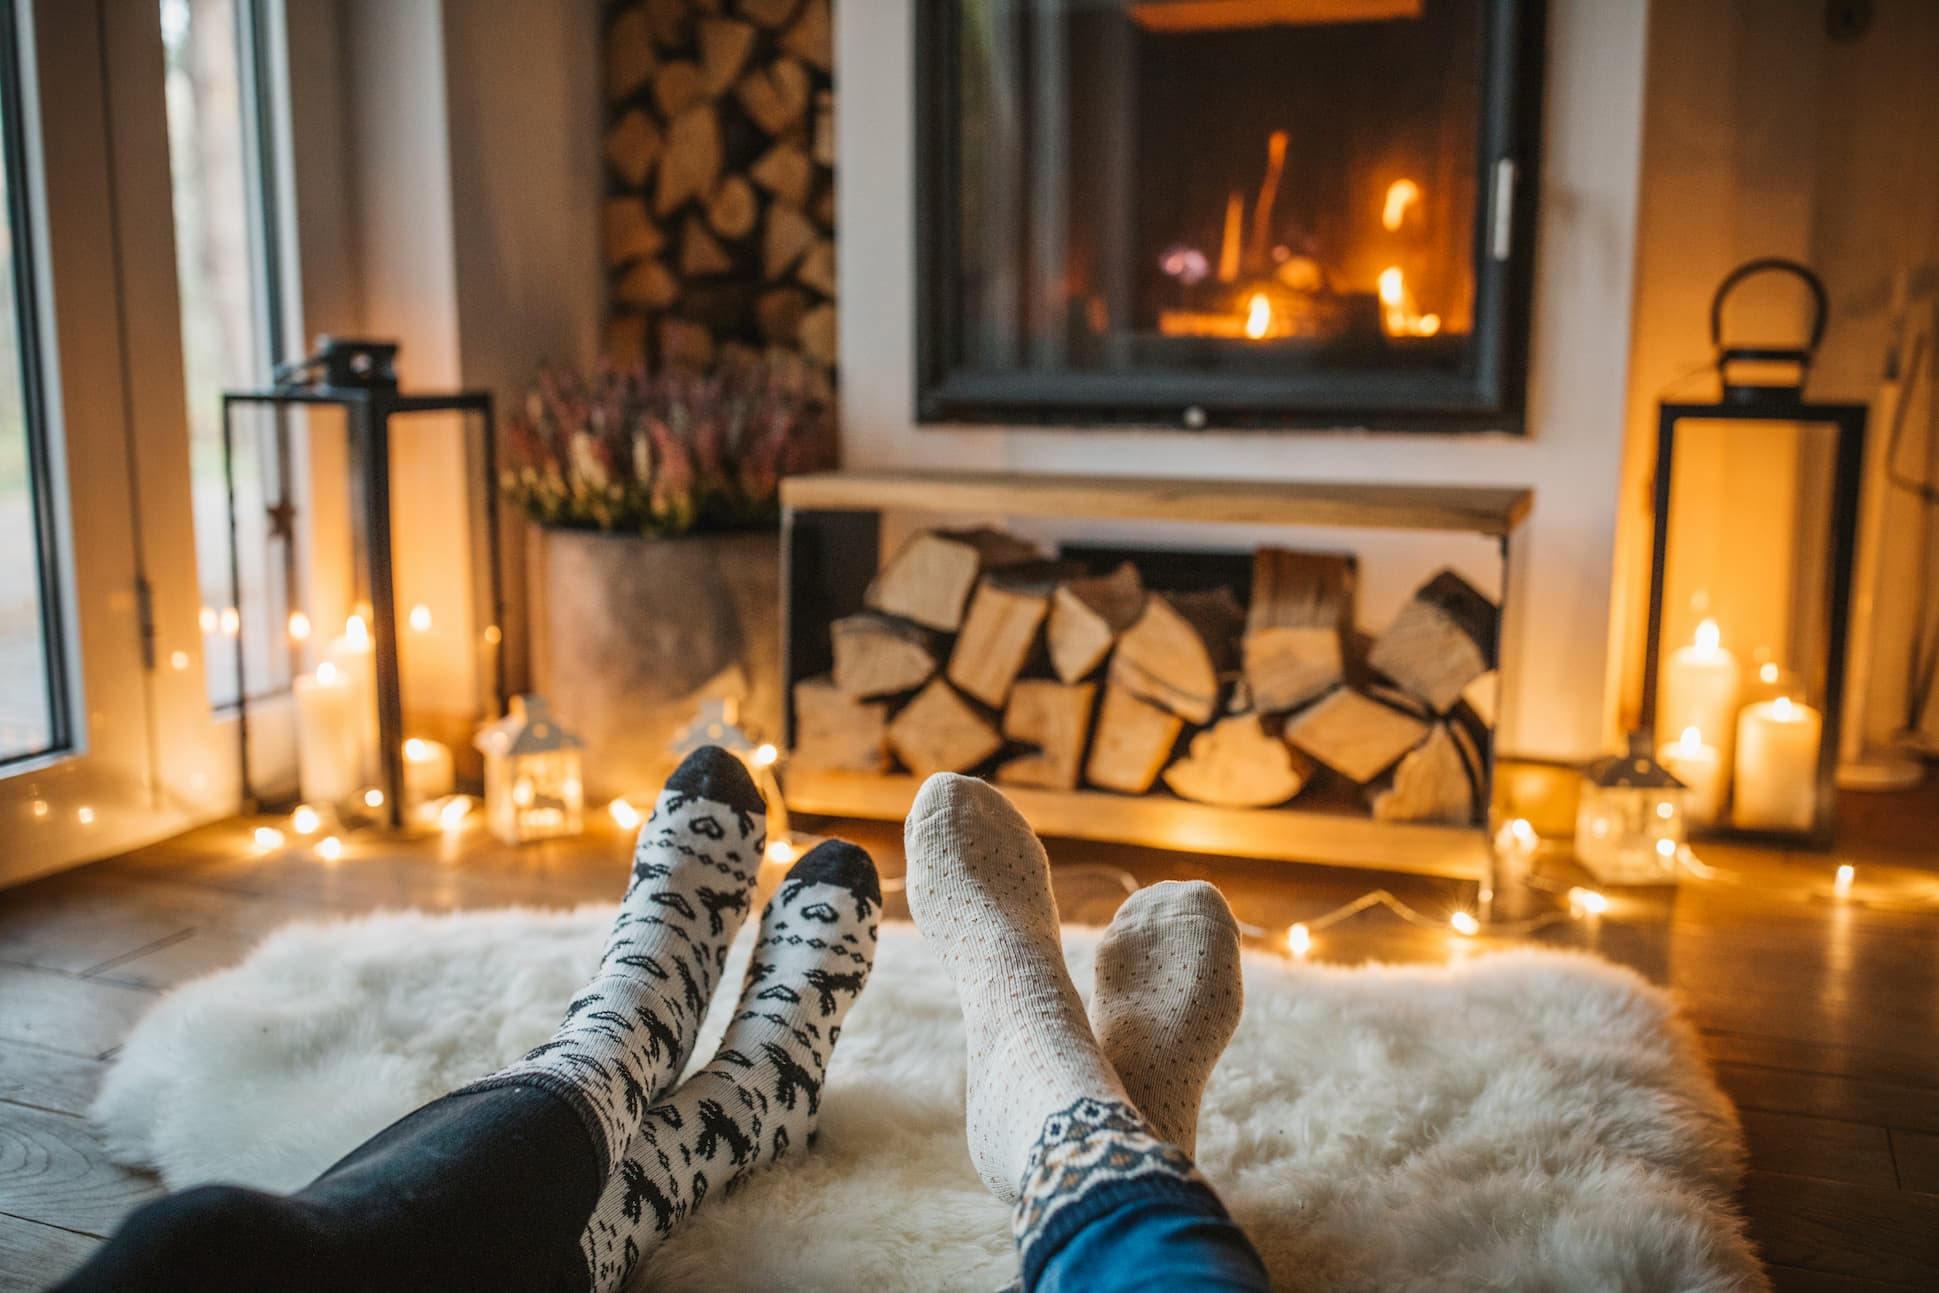 relaxing in front of a fireplace